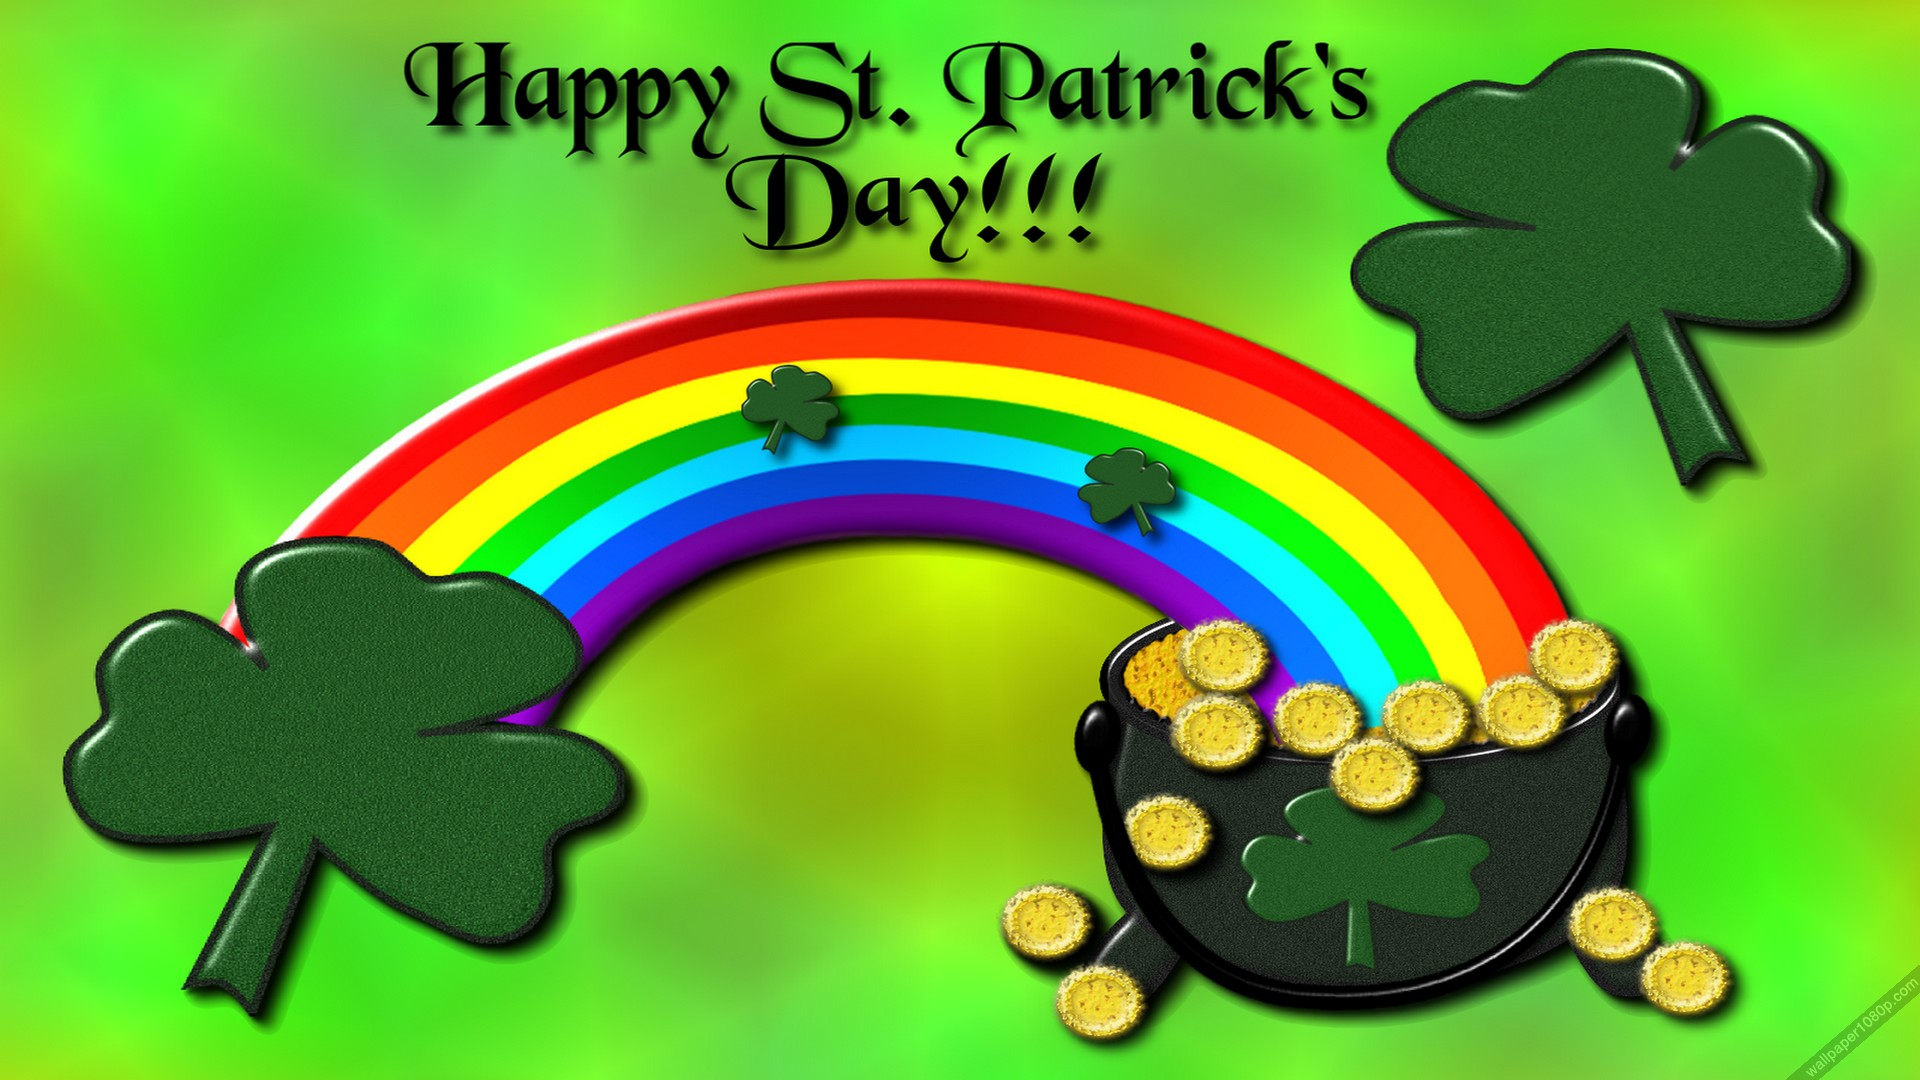 St Patricks Day Desktop Background wallpaper St Patricks Day 1920x1080